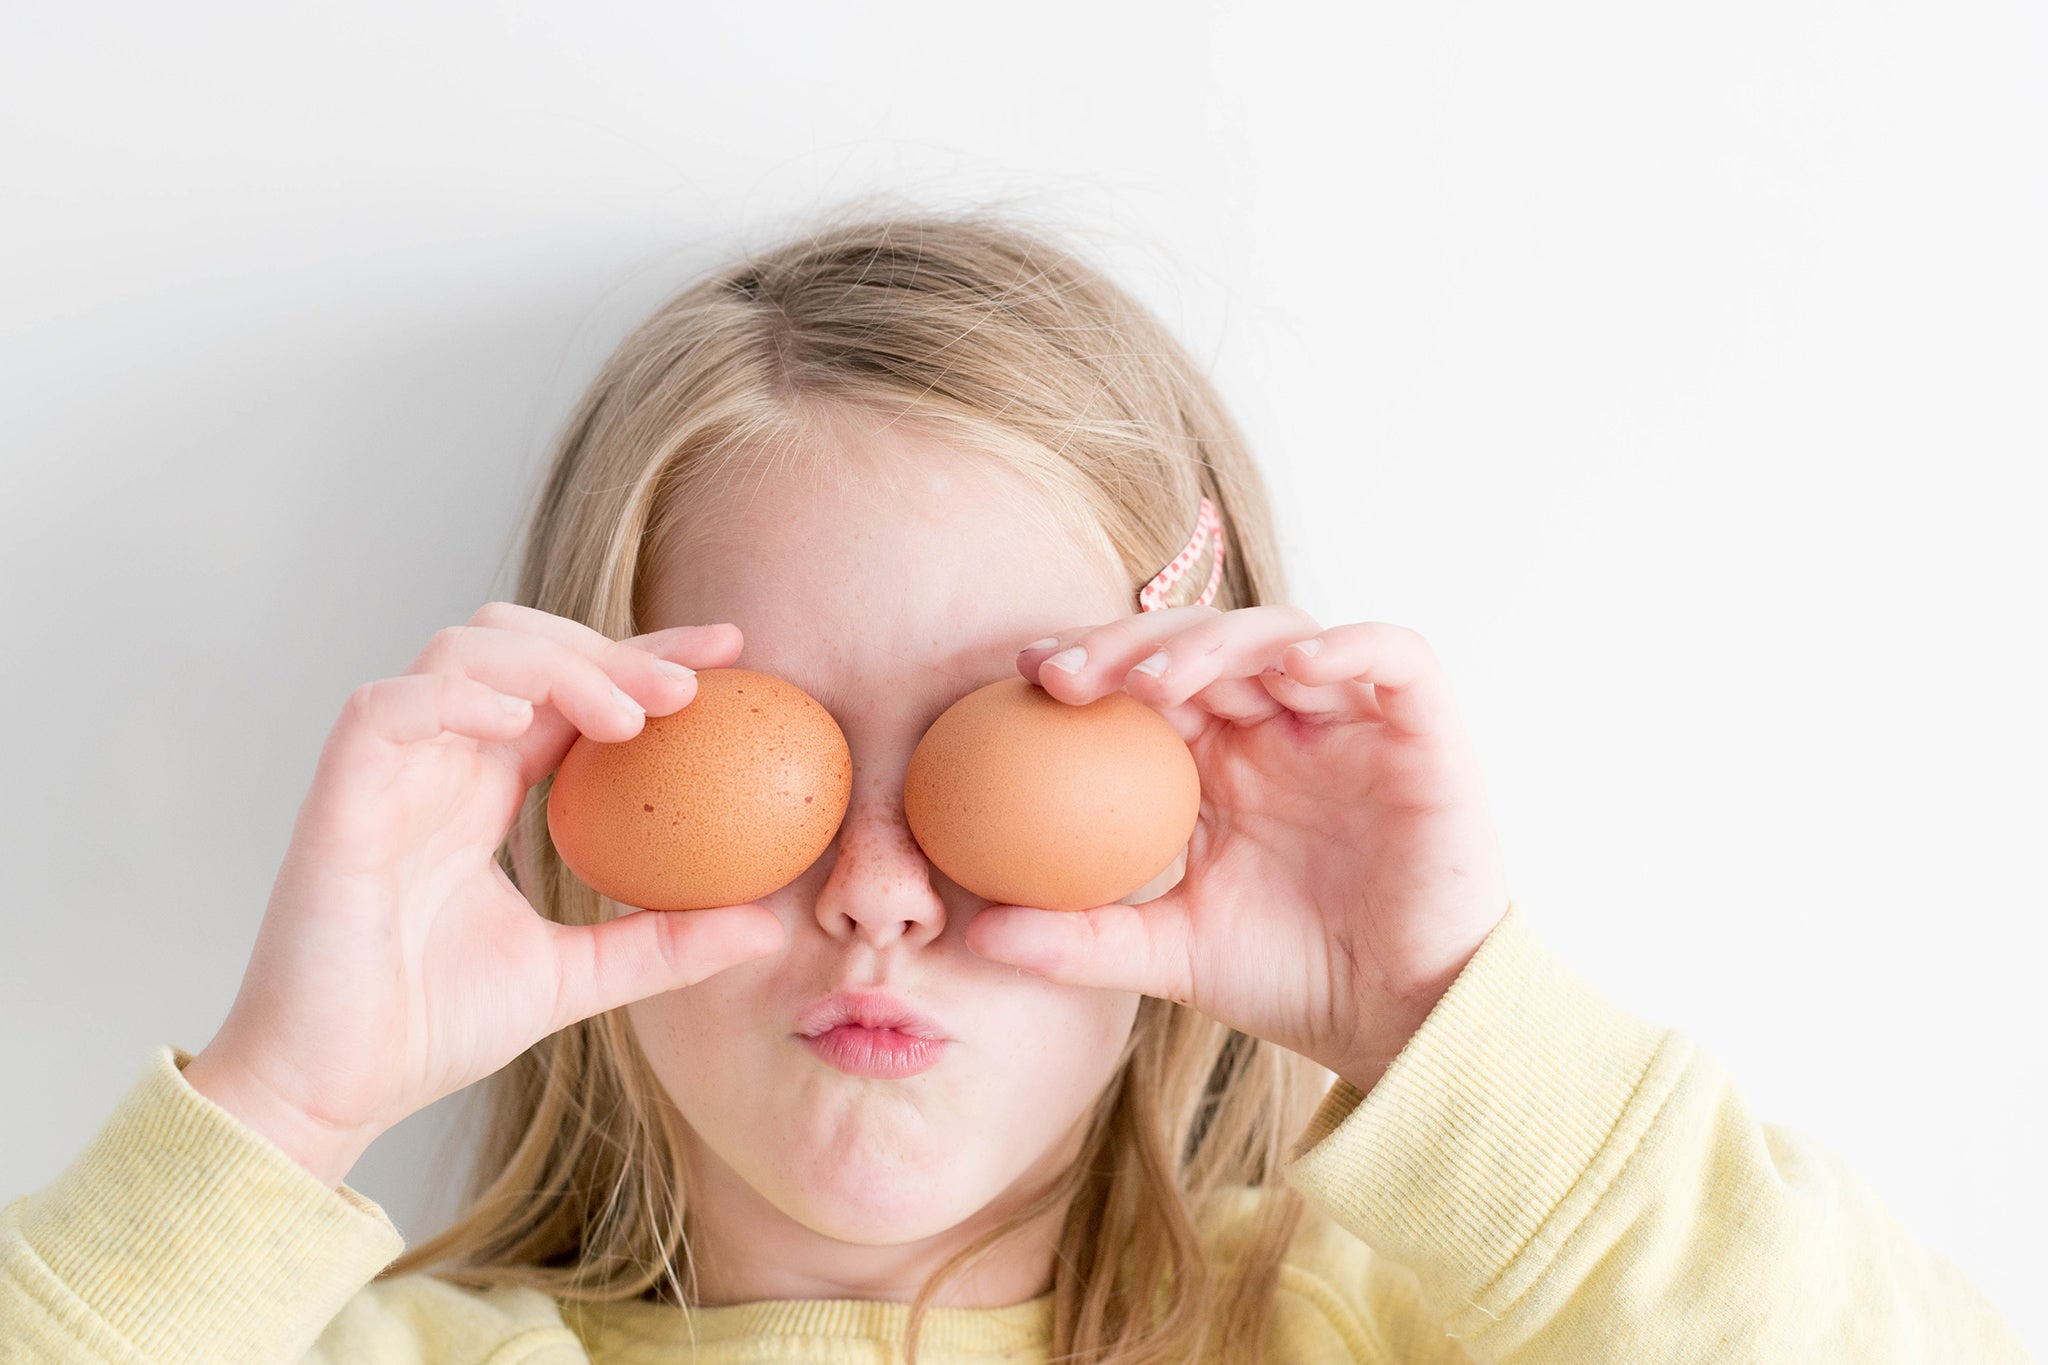 Image of little girl holding two brown shelled eggs over her eyes.